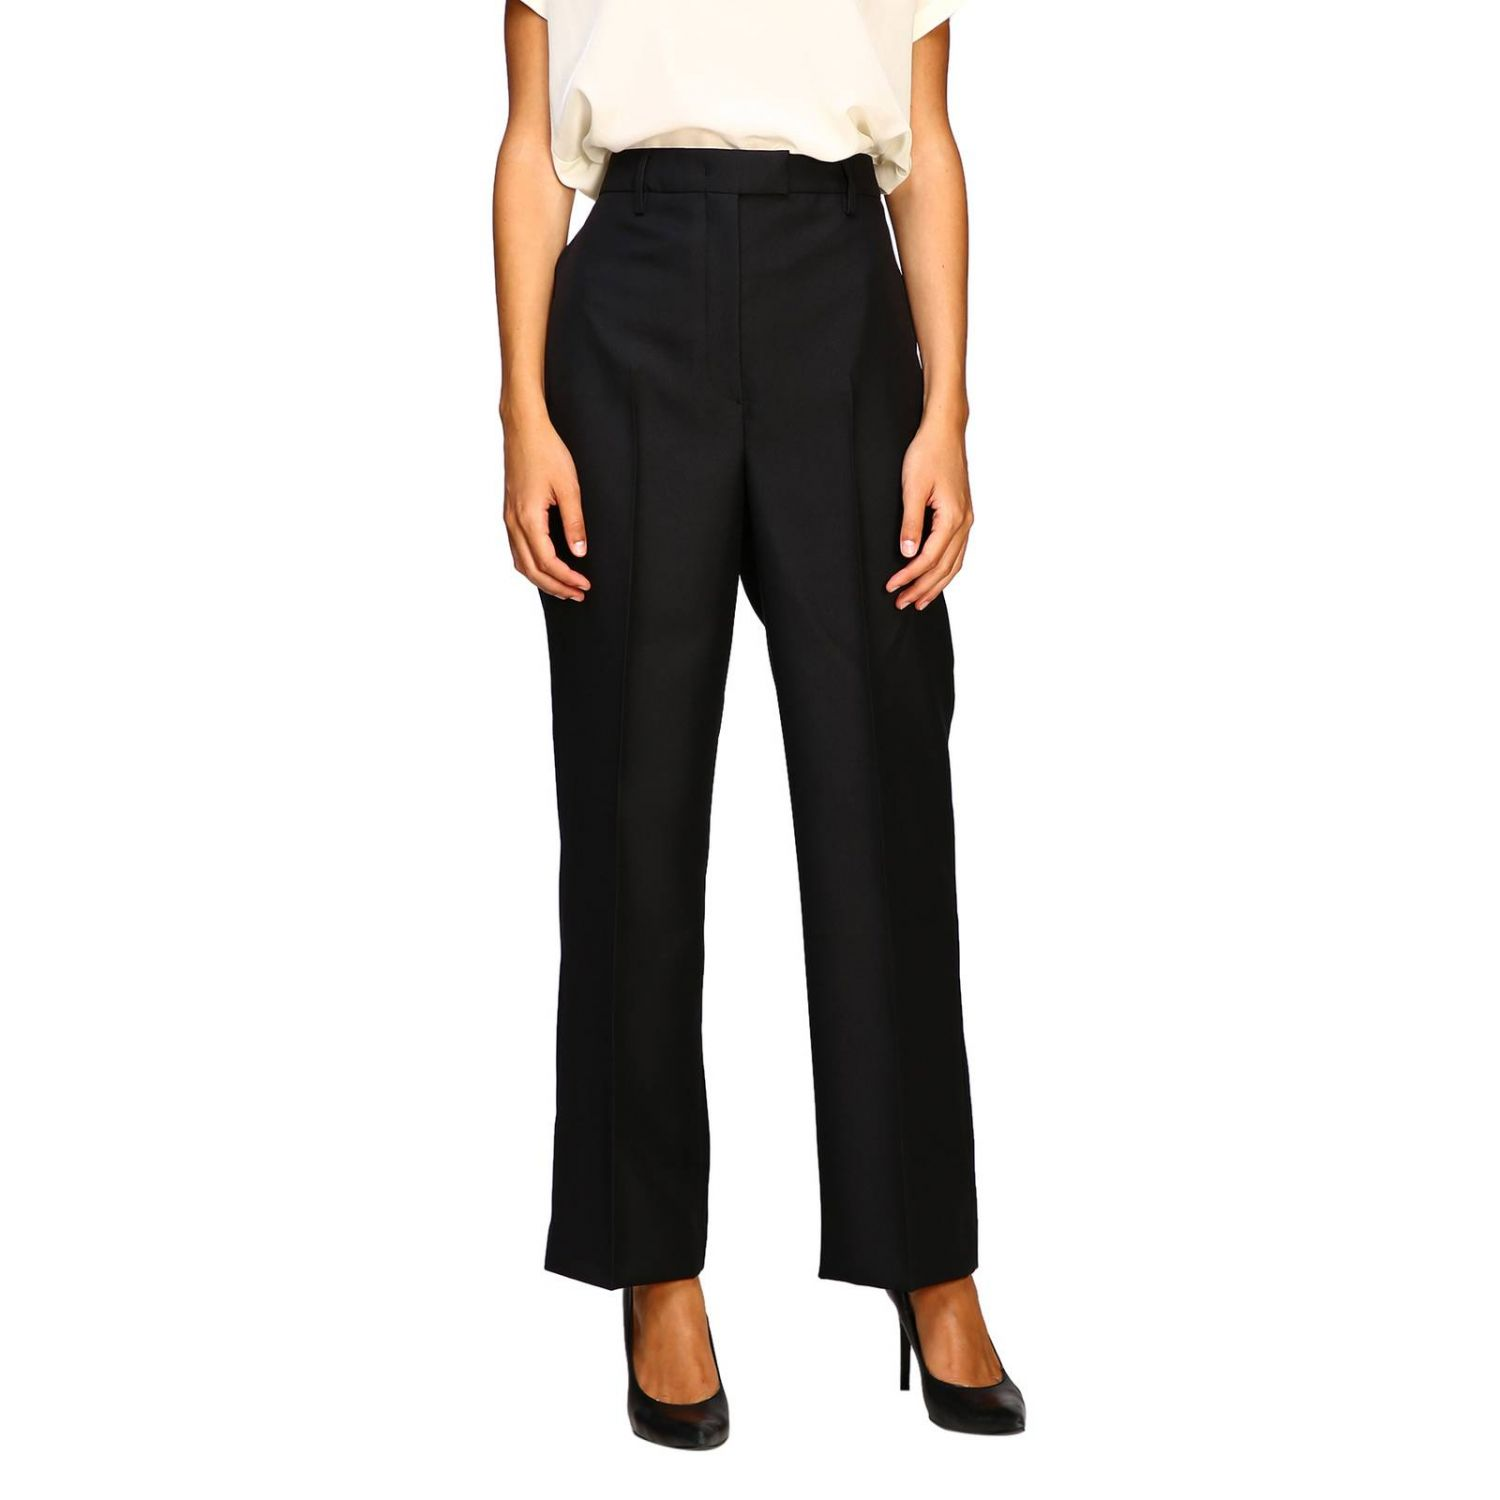 Prada classic high-waisted pants black 1